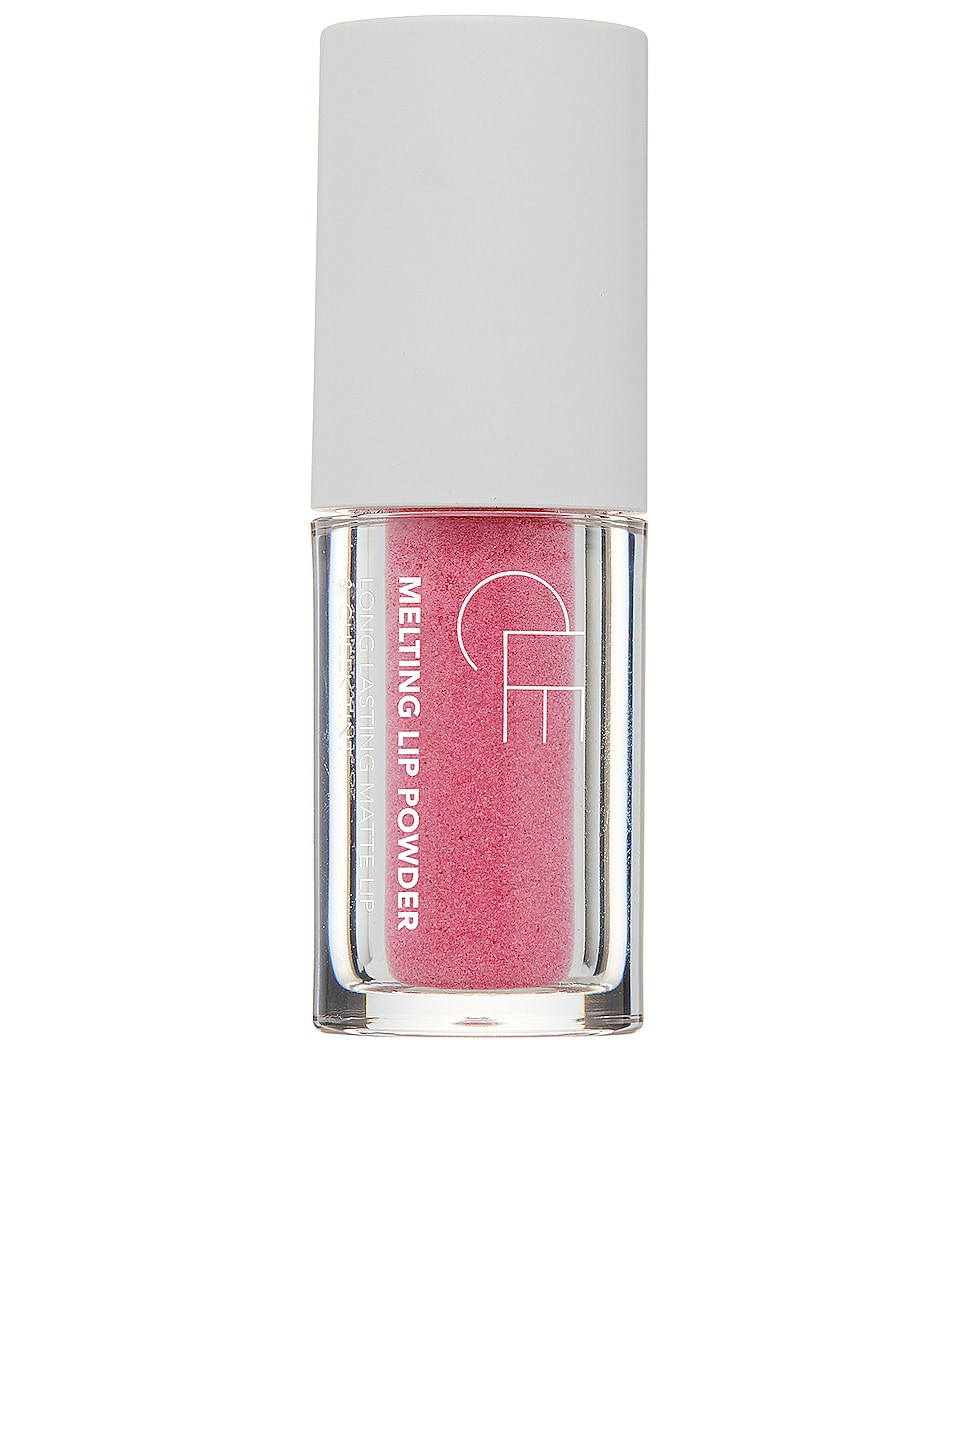 CLE COSMETICS Melting Lip Powder in Barbie Pink